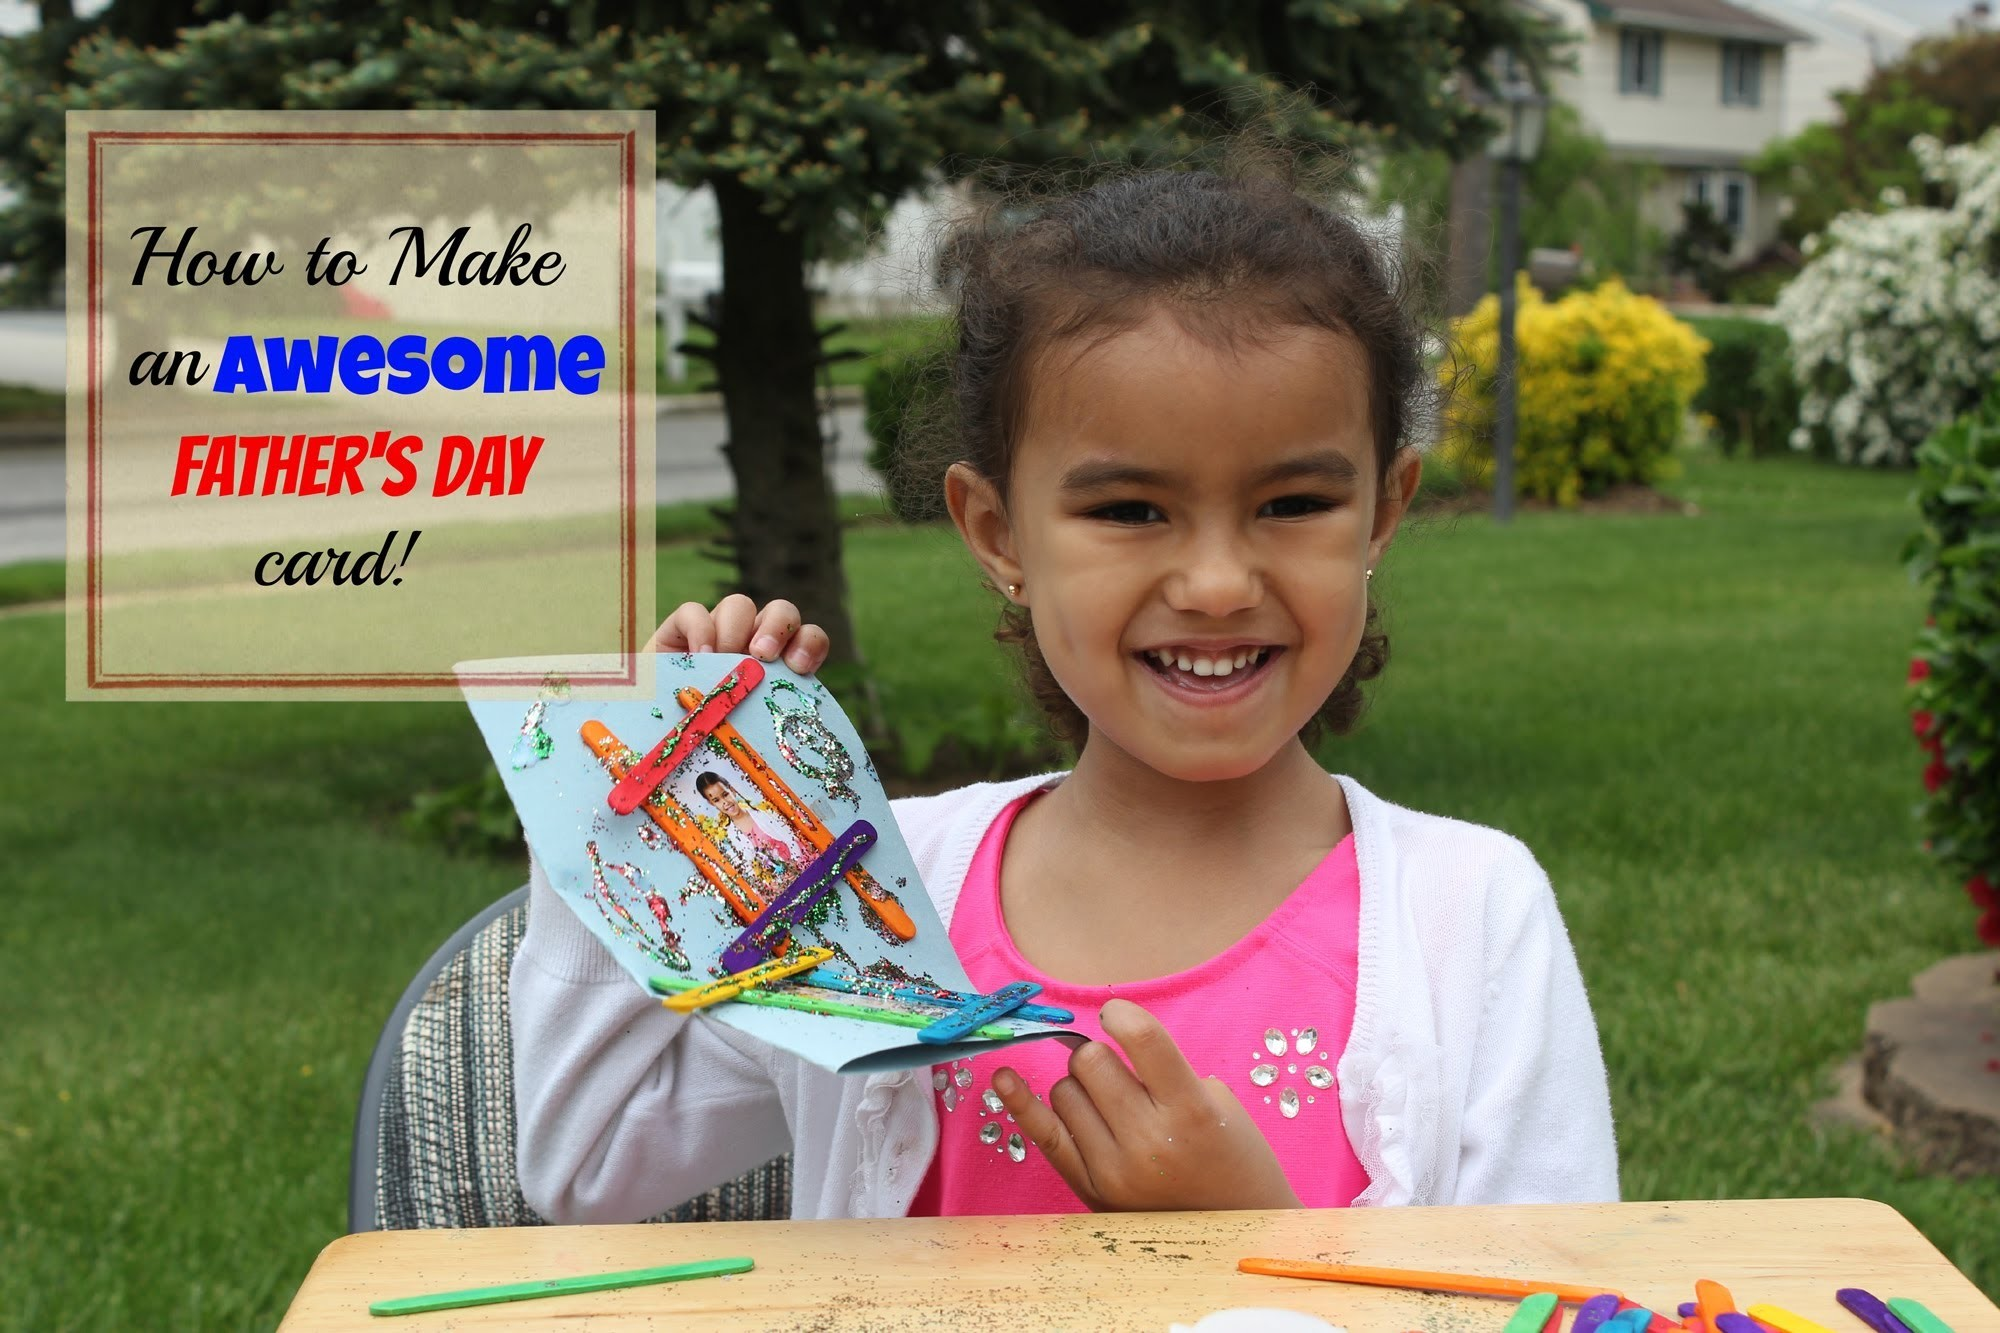 DIY: How to Make an Awesome Father's Day Card